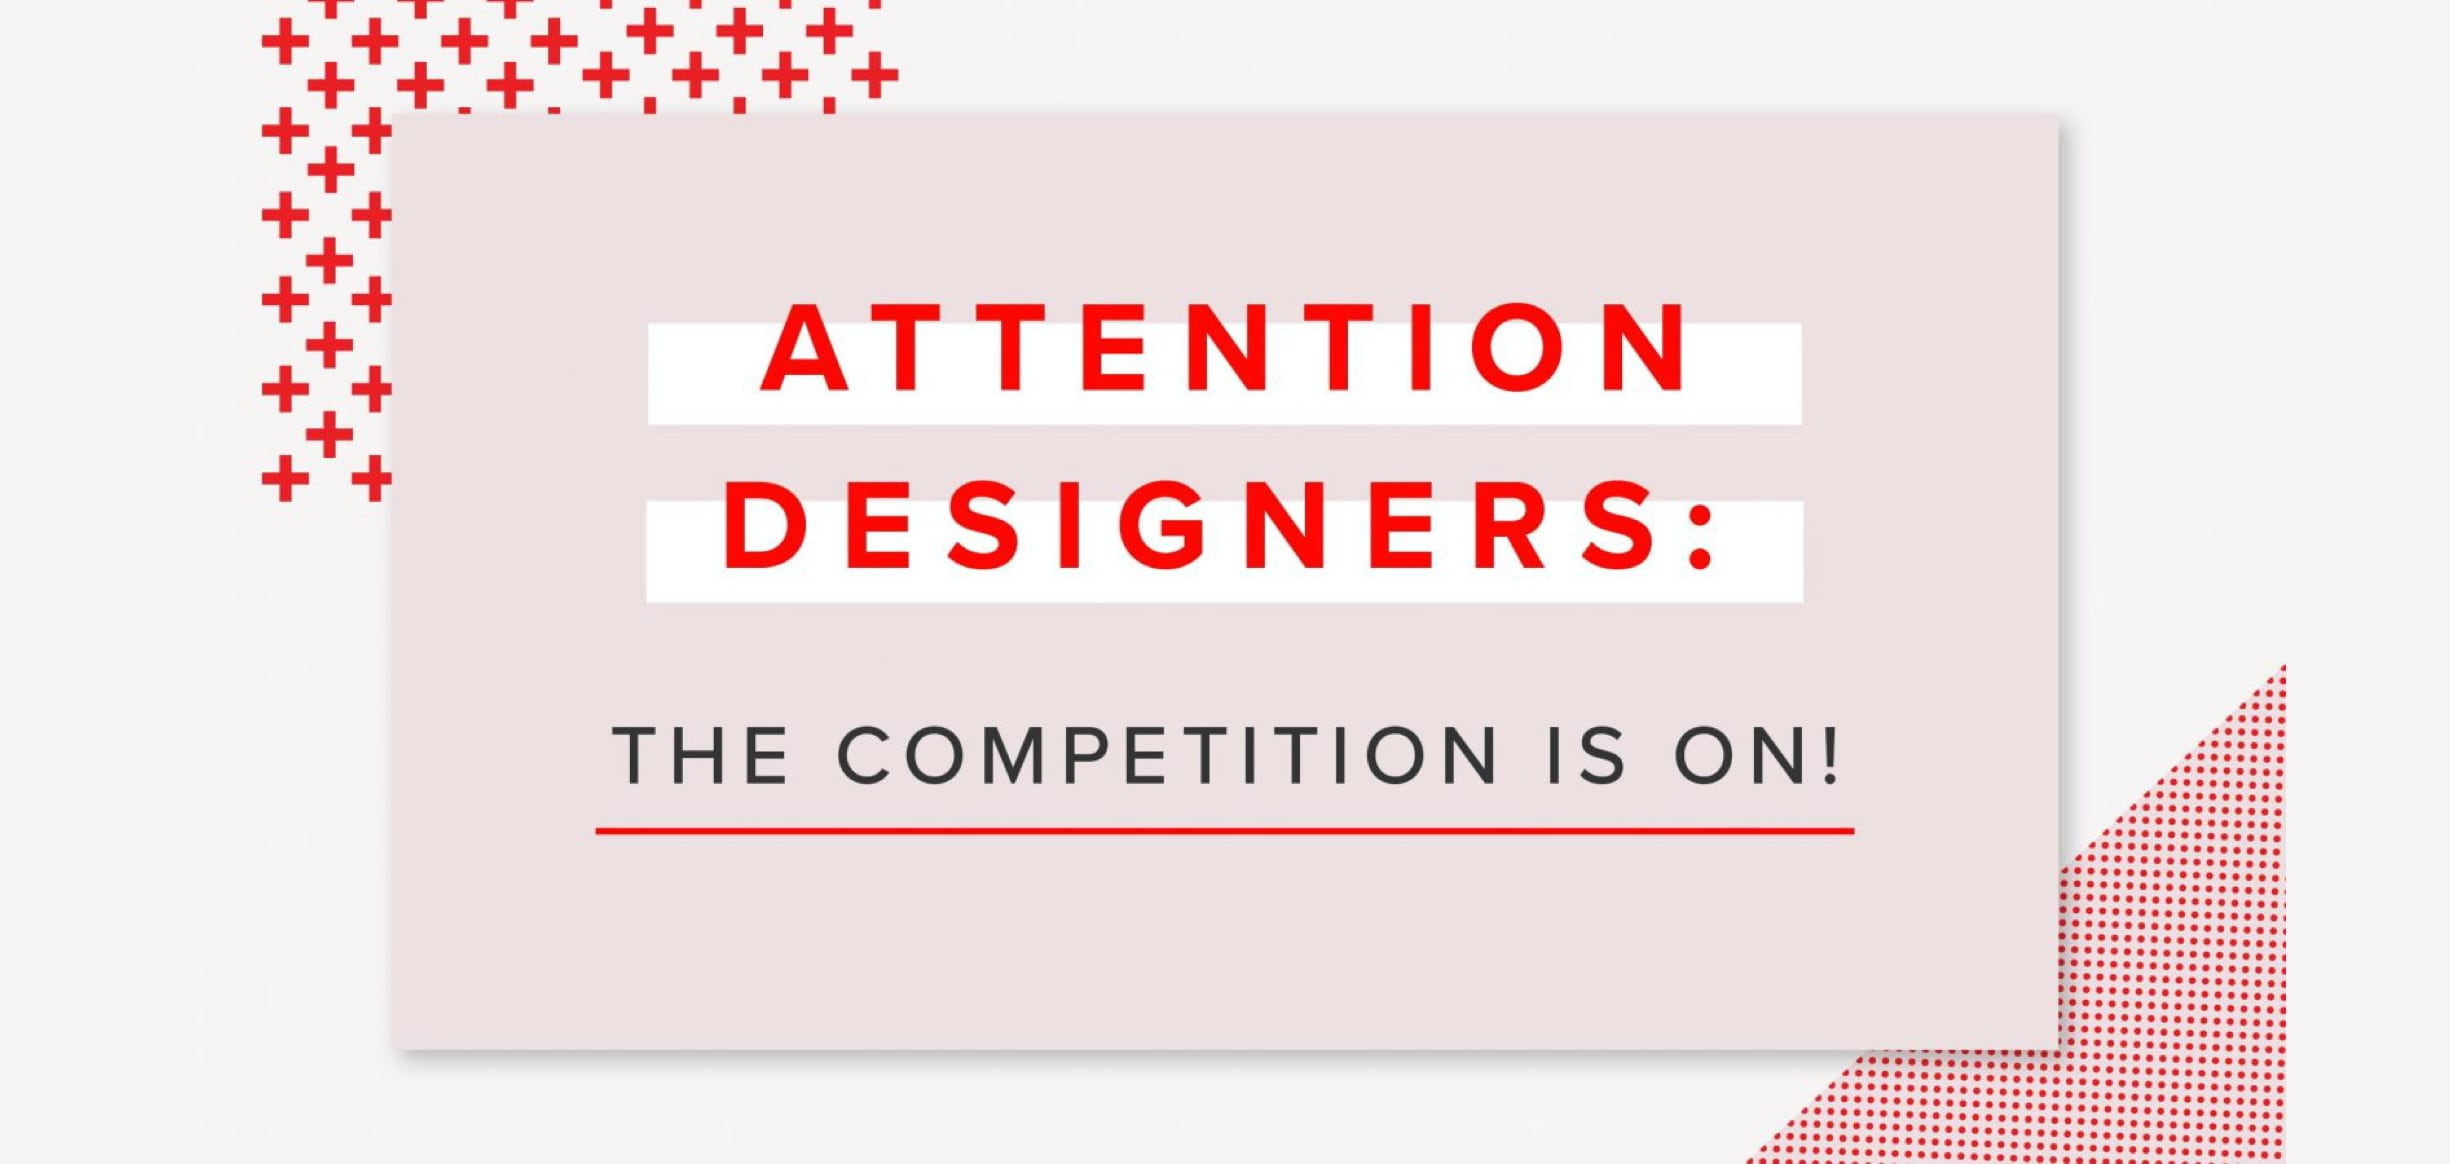 You Could Win: Enter Our Design Contest